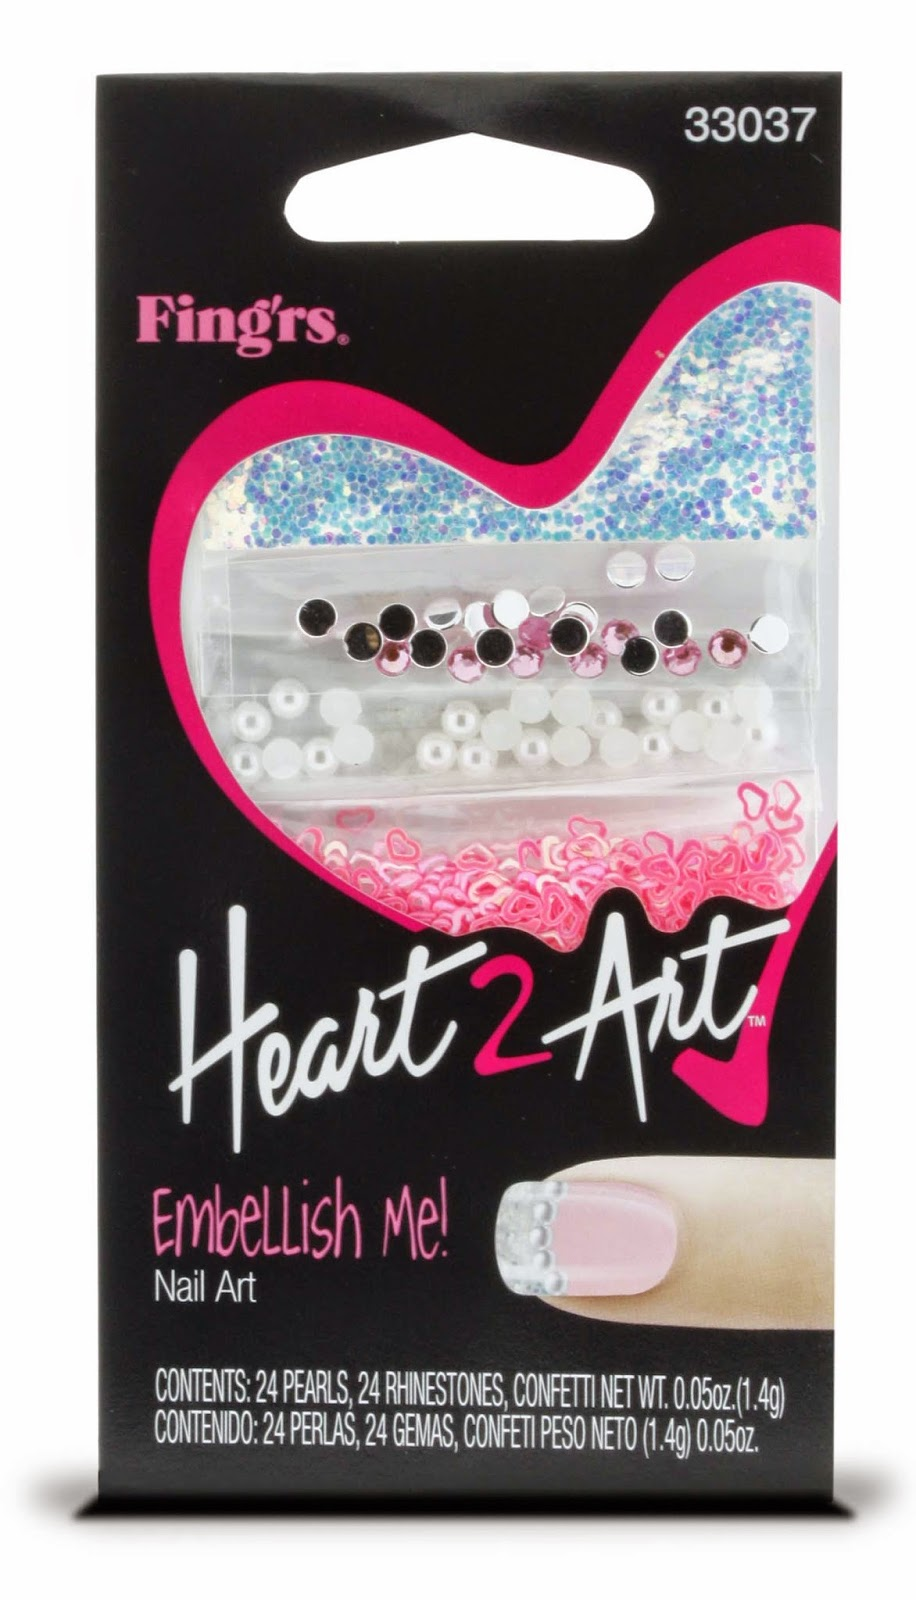 Heart2Art - Embellish Me!